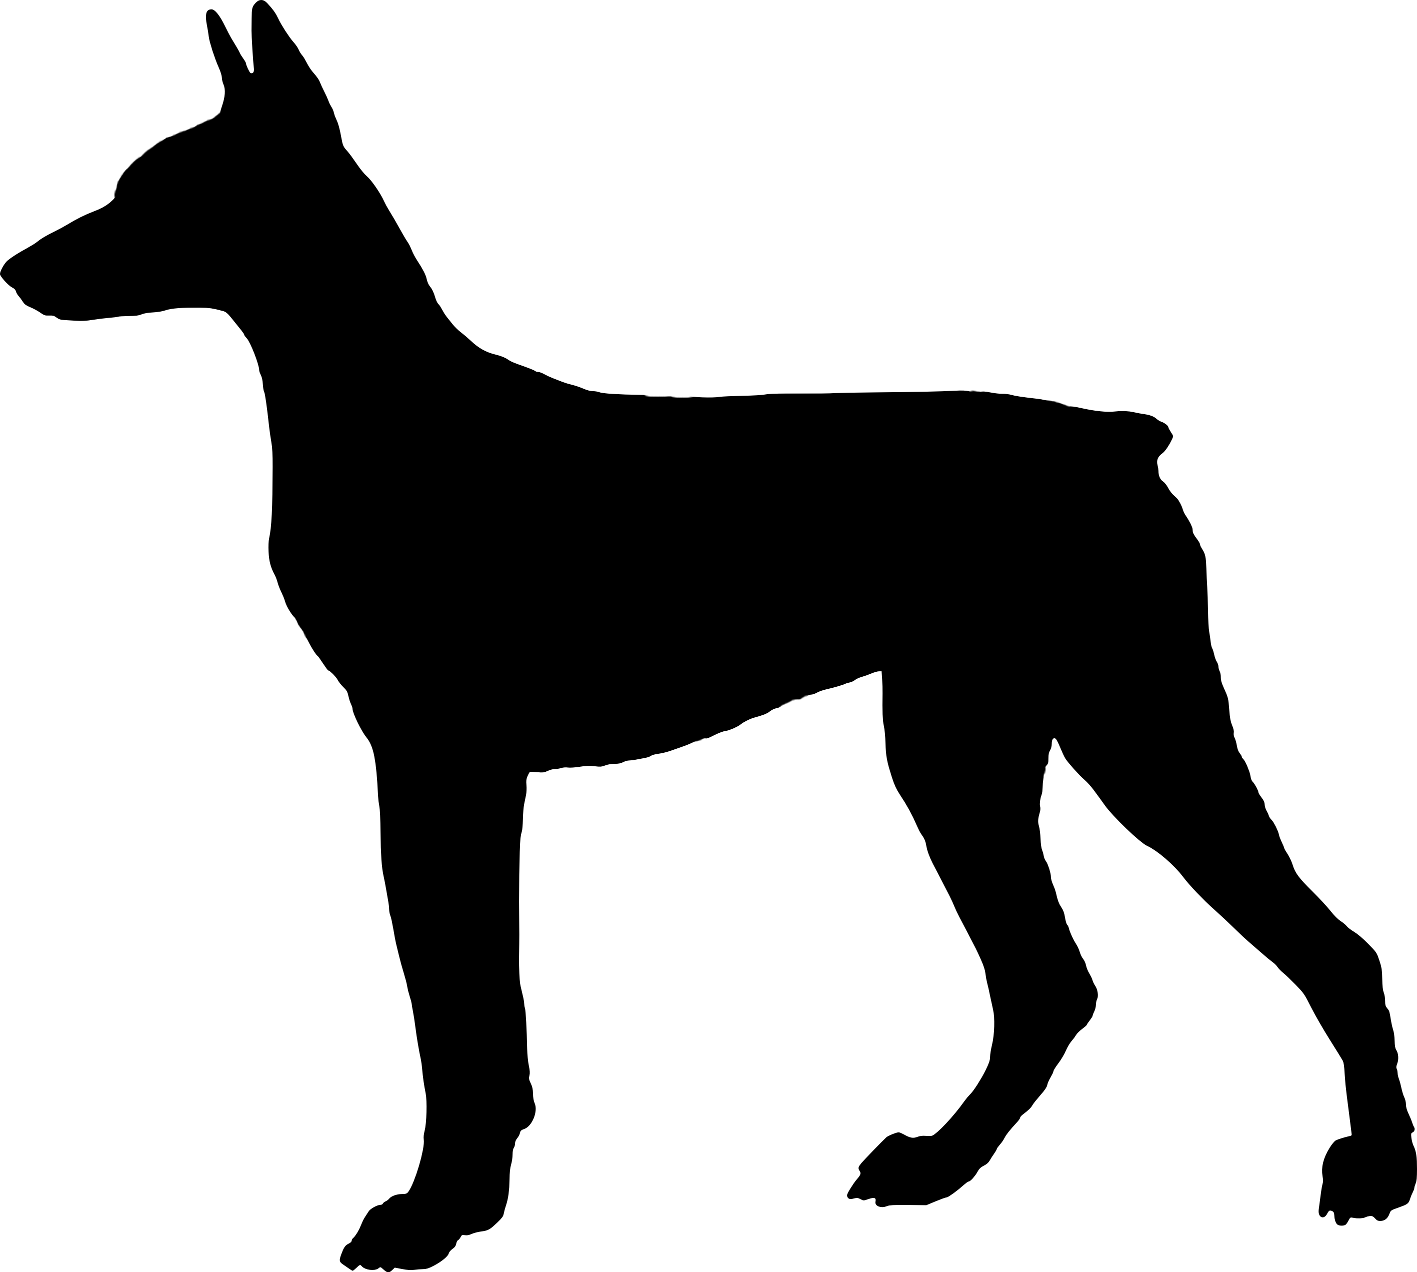 1417x1272 Dog Silhouette